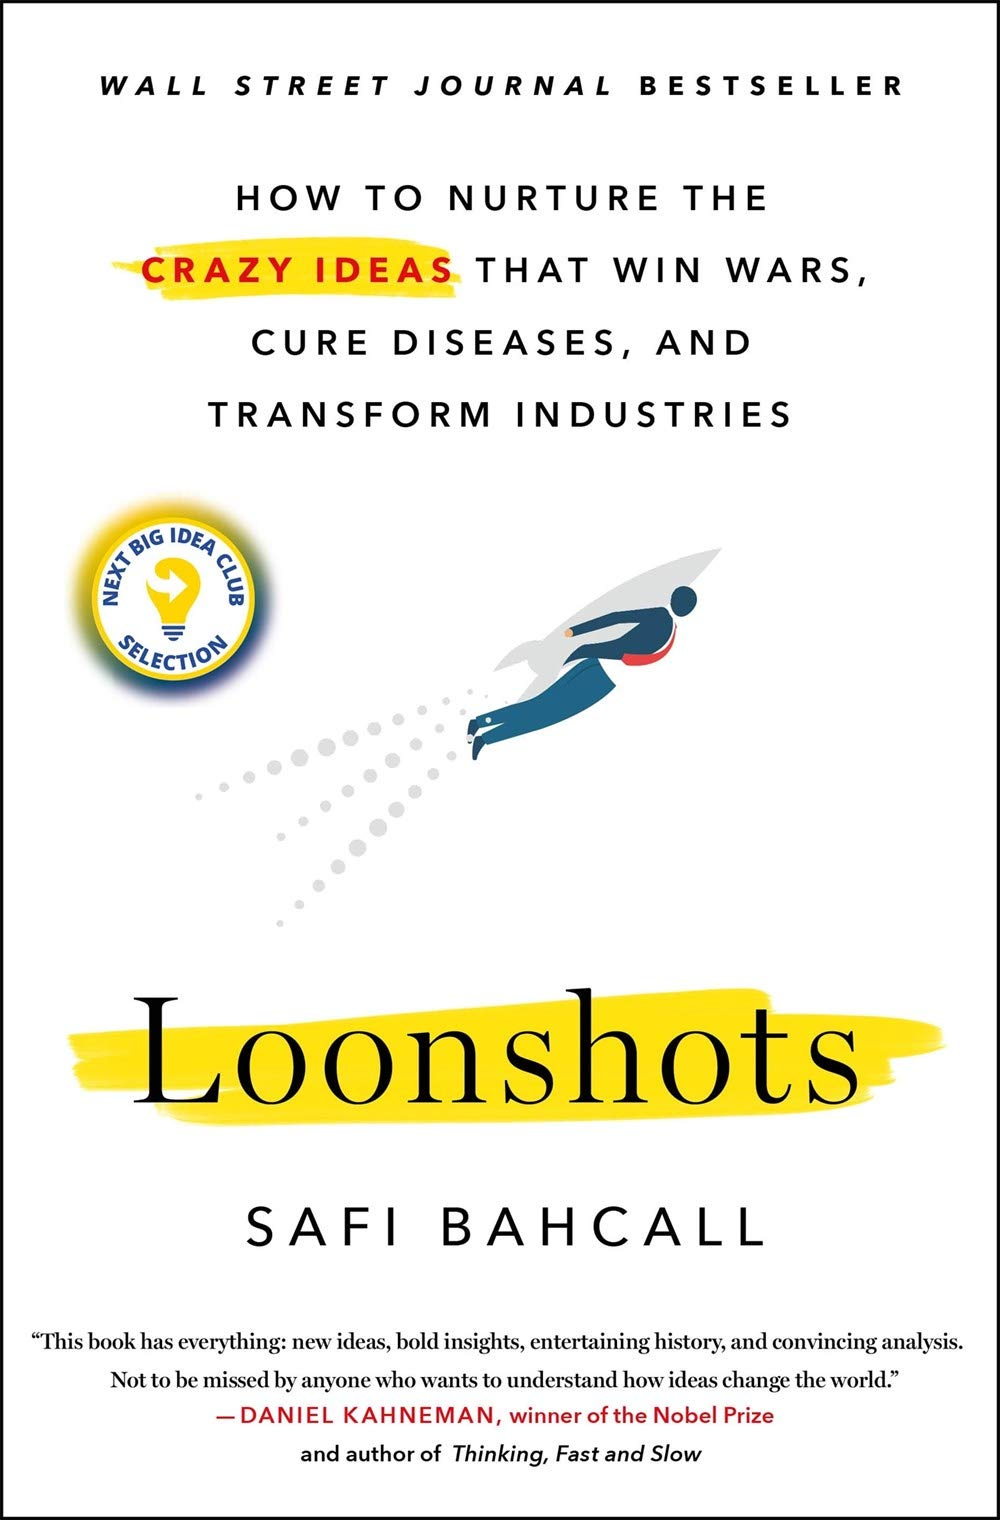 Loonshots: How to Nurture the Crazy Ideas That Win Wars, Cure Diseases, and  Transform Industries: Amazon.co.uk: Safi Bahcall: 9781250225610: Books